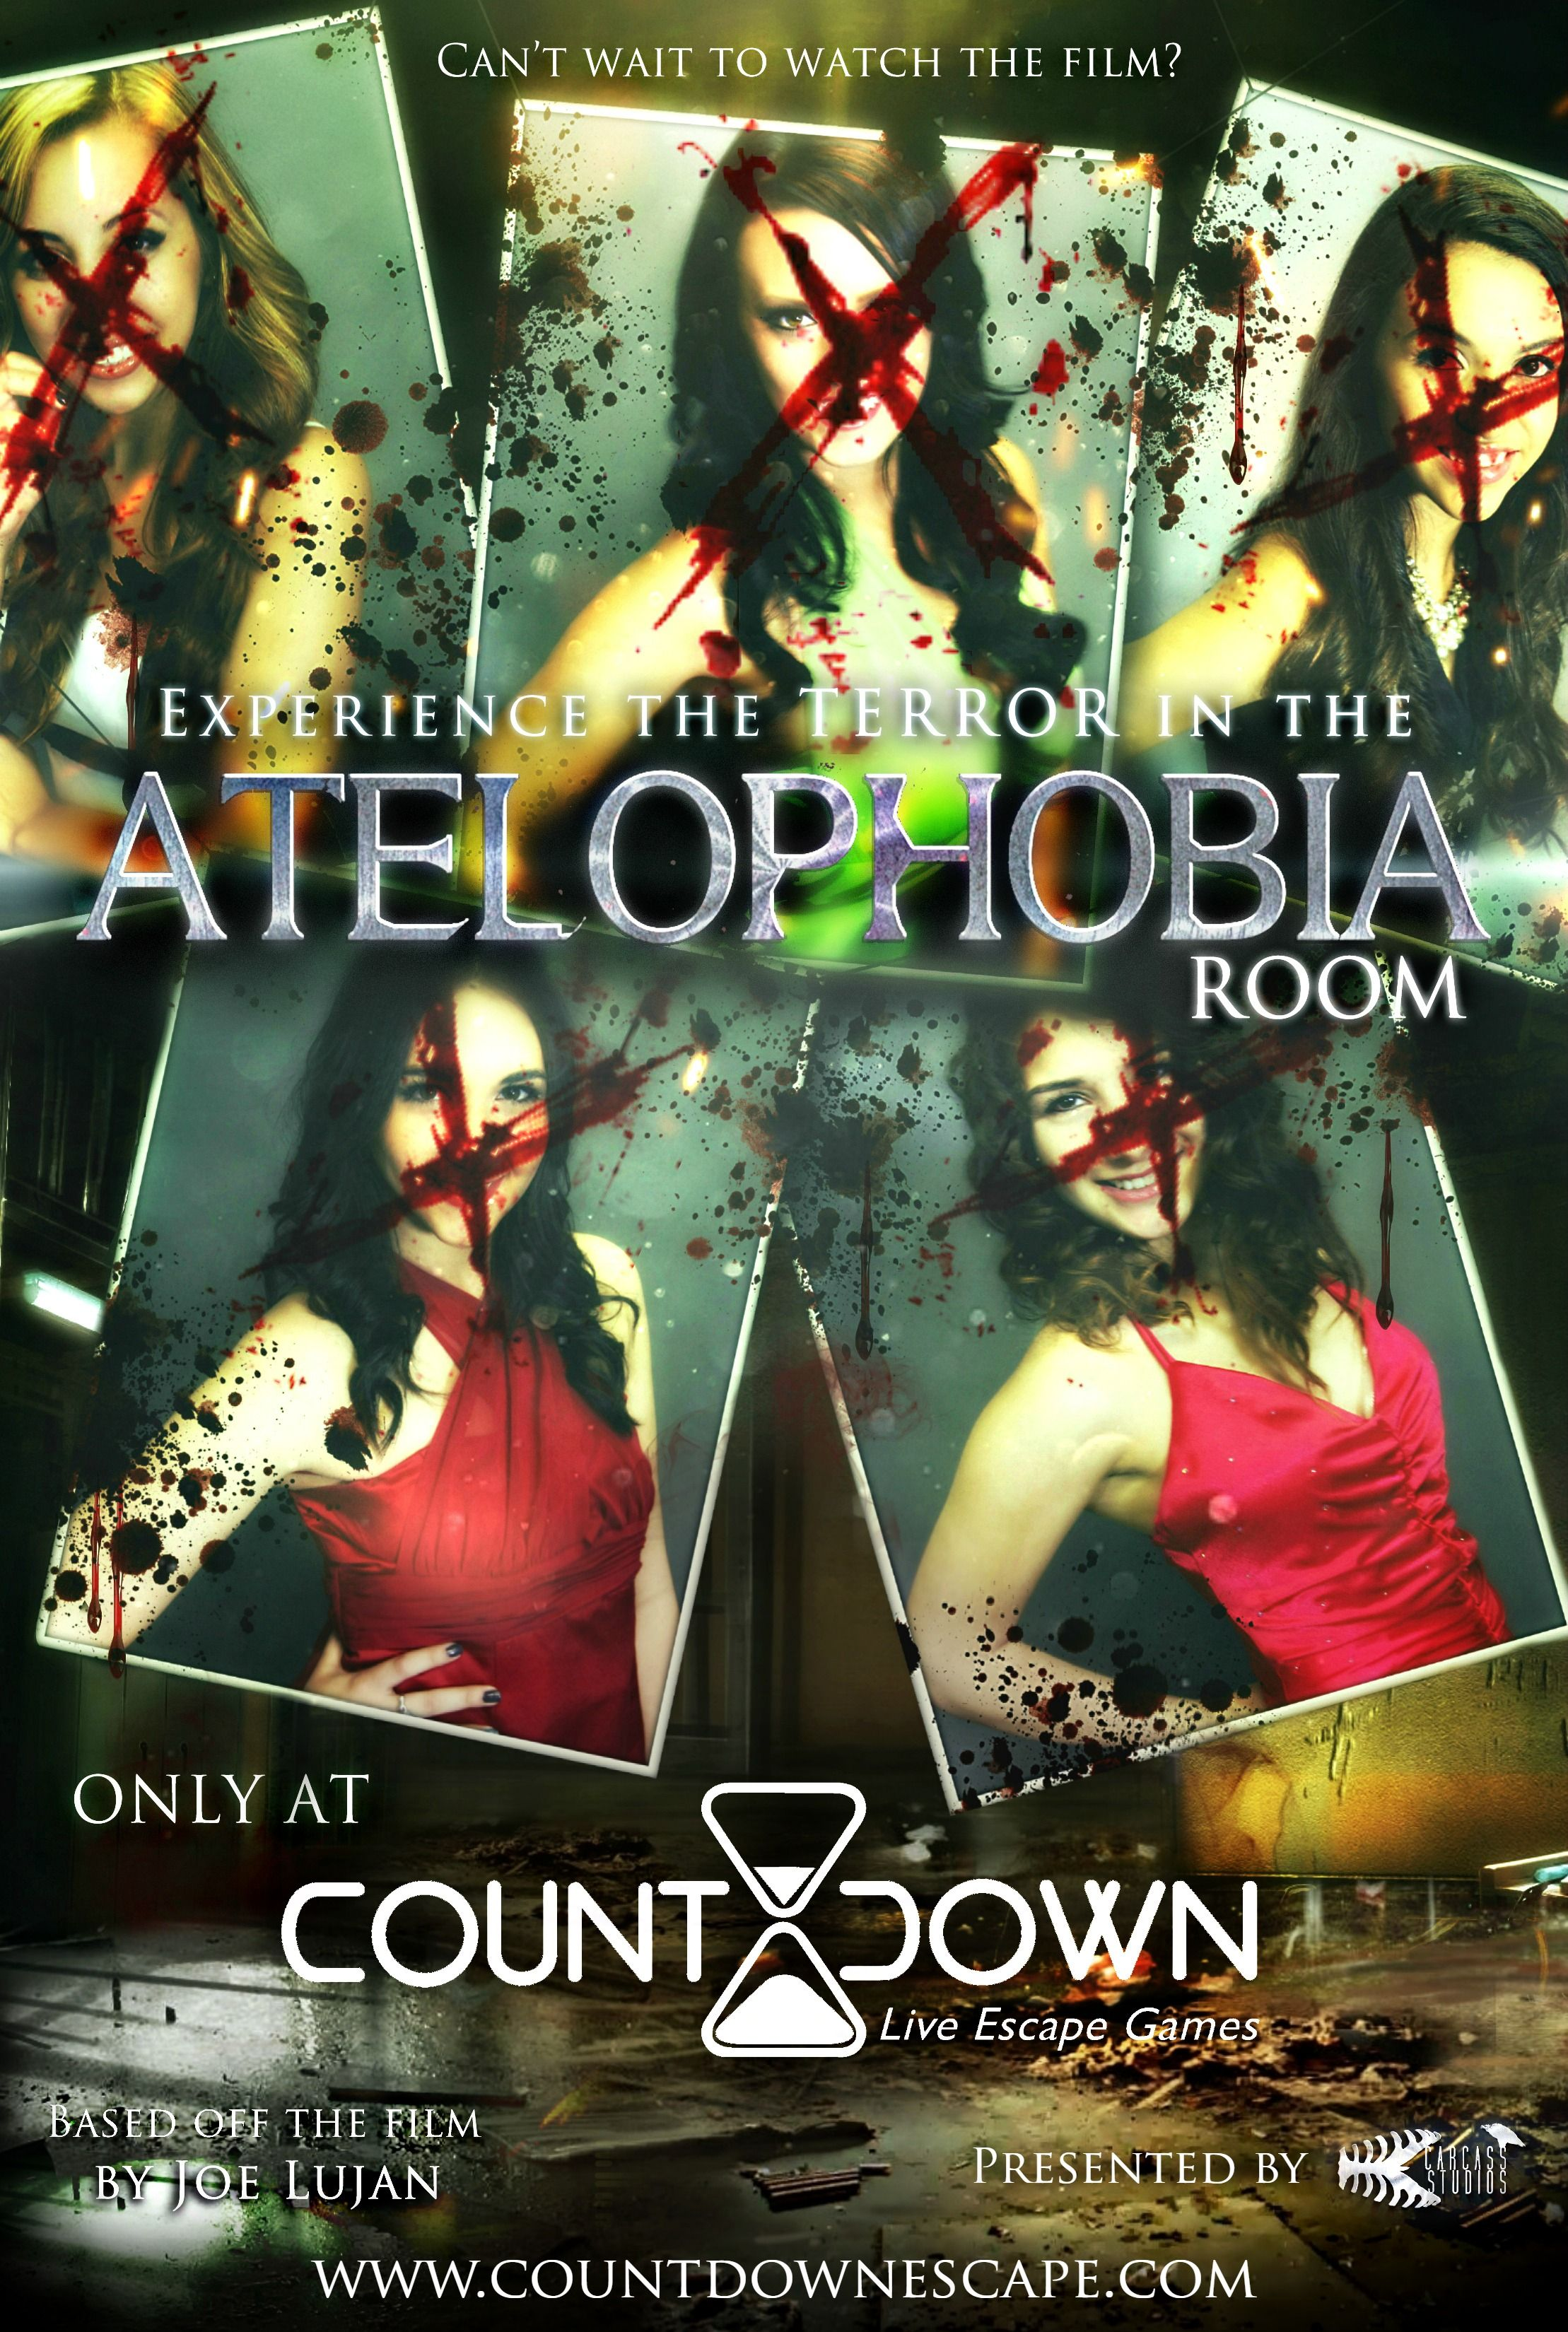 You only have 60 minutes to escape from The Atelophobia Live Escape Game